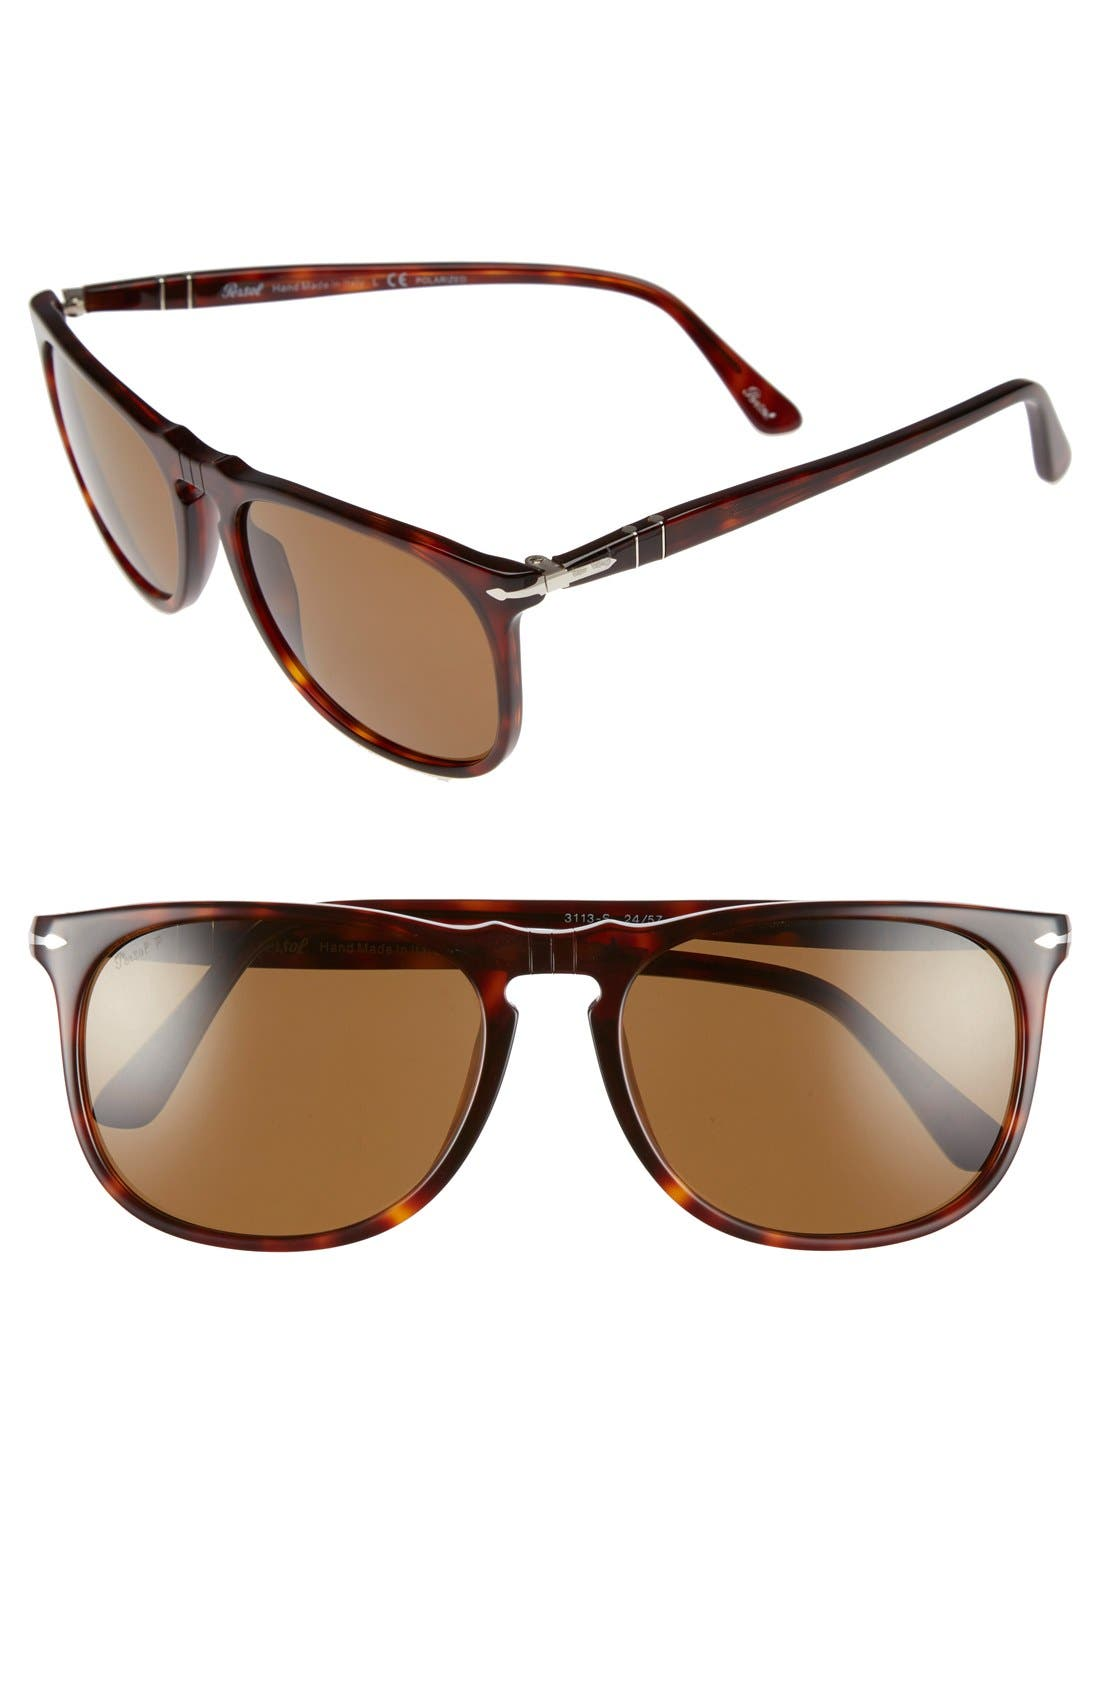 Alternate Image 1 Selected - Persol 57mm Polarized Sunglasses